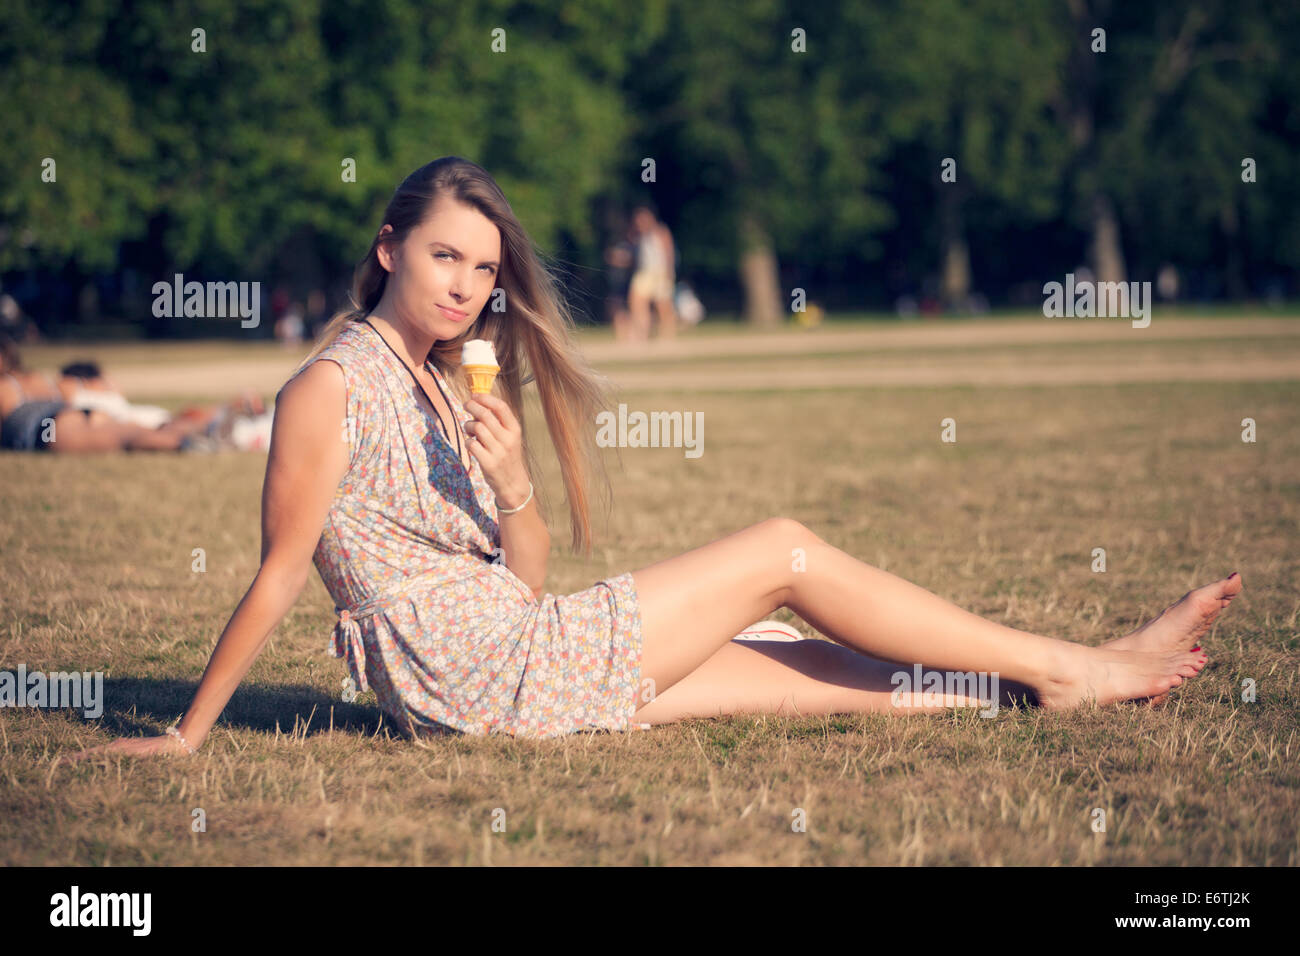 A young woman eating an ice cream cone in Hyde Park - Stock Image